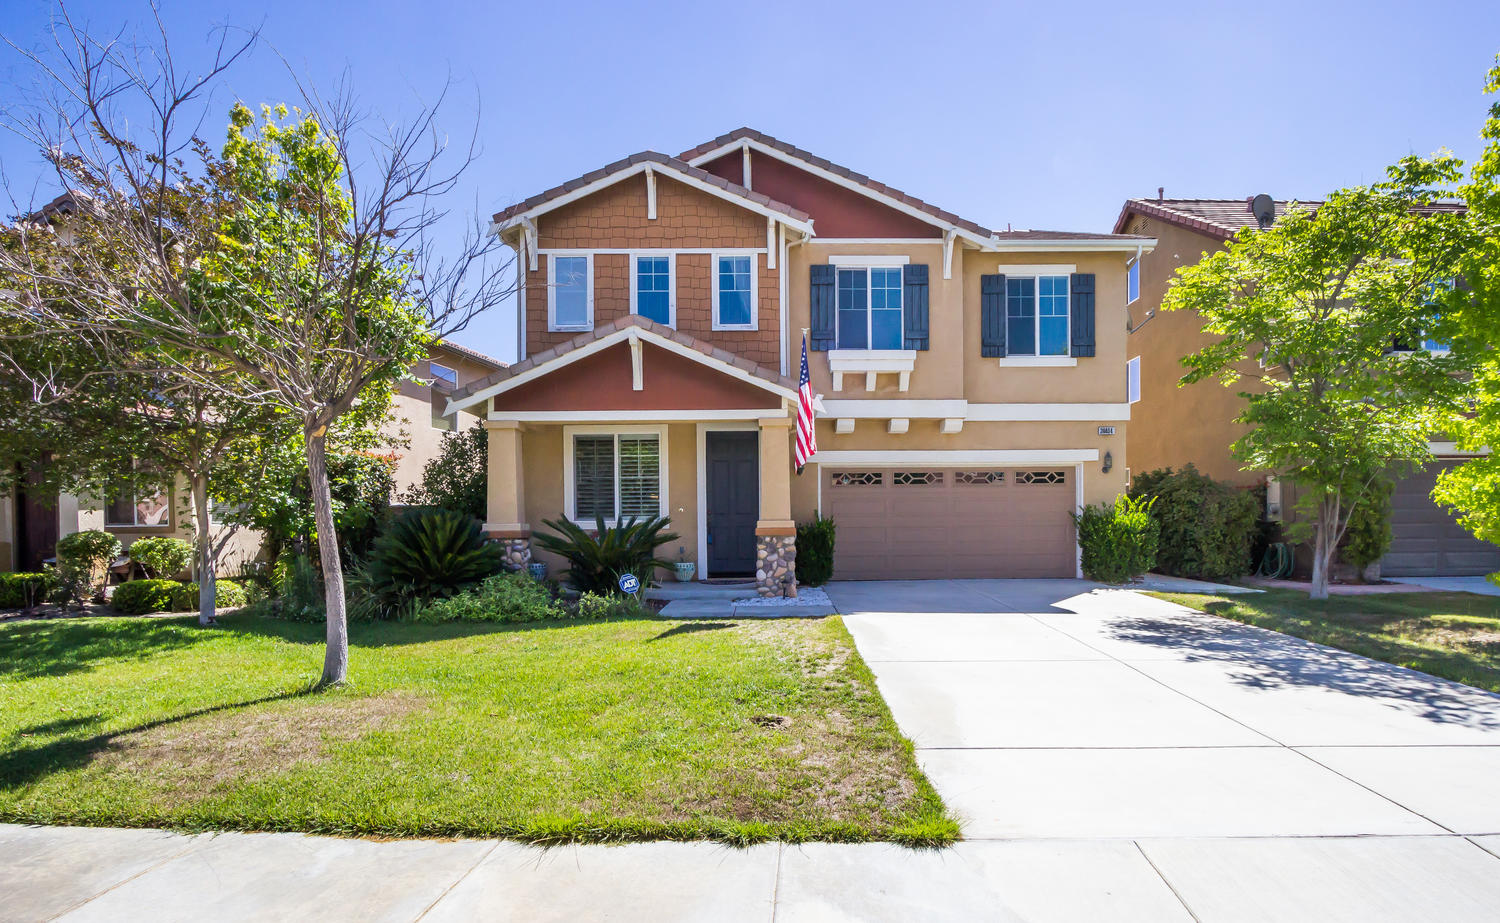 Homes for Sale in Winchester, CA